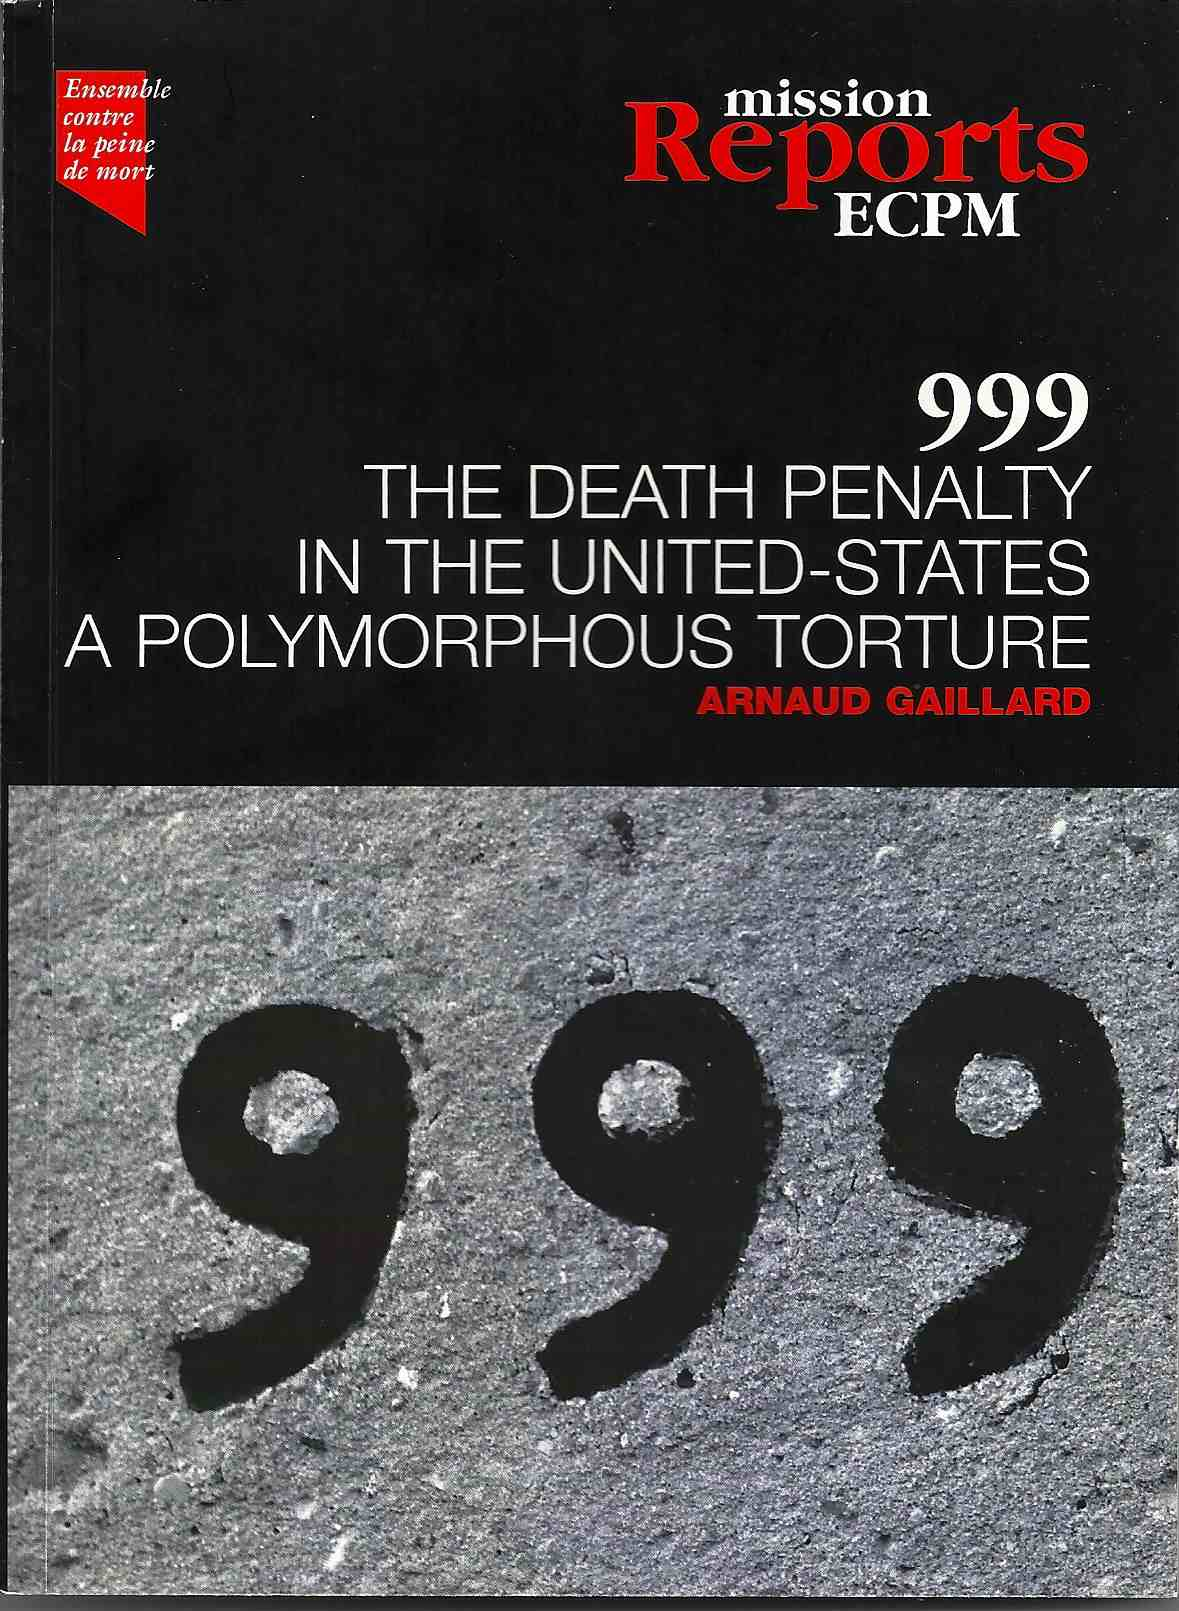 an analysis of the issues of the capital punishment and the infliction of the death penalty in the u Death penalty or capital punishment is the sentence of execution for the crime of murder and some other capital crime (serious crimes especially murder, punishable by death) the death penalty was practiced in the united states from since colonial times until today.